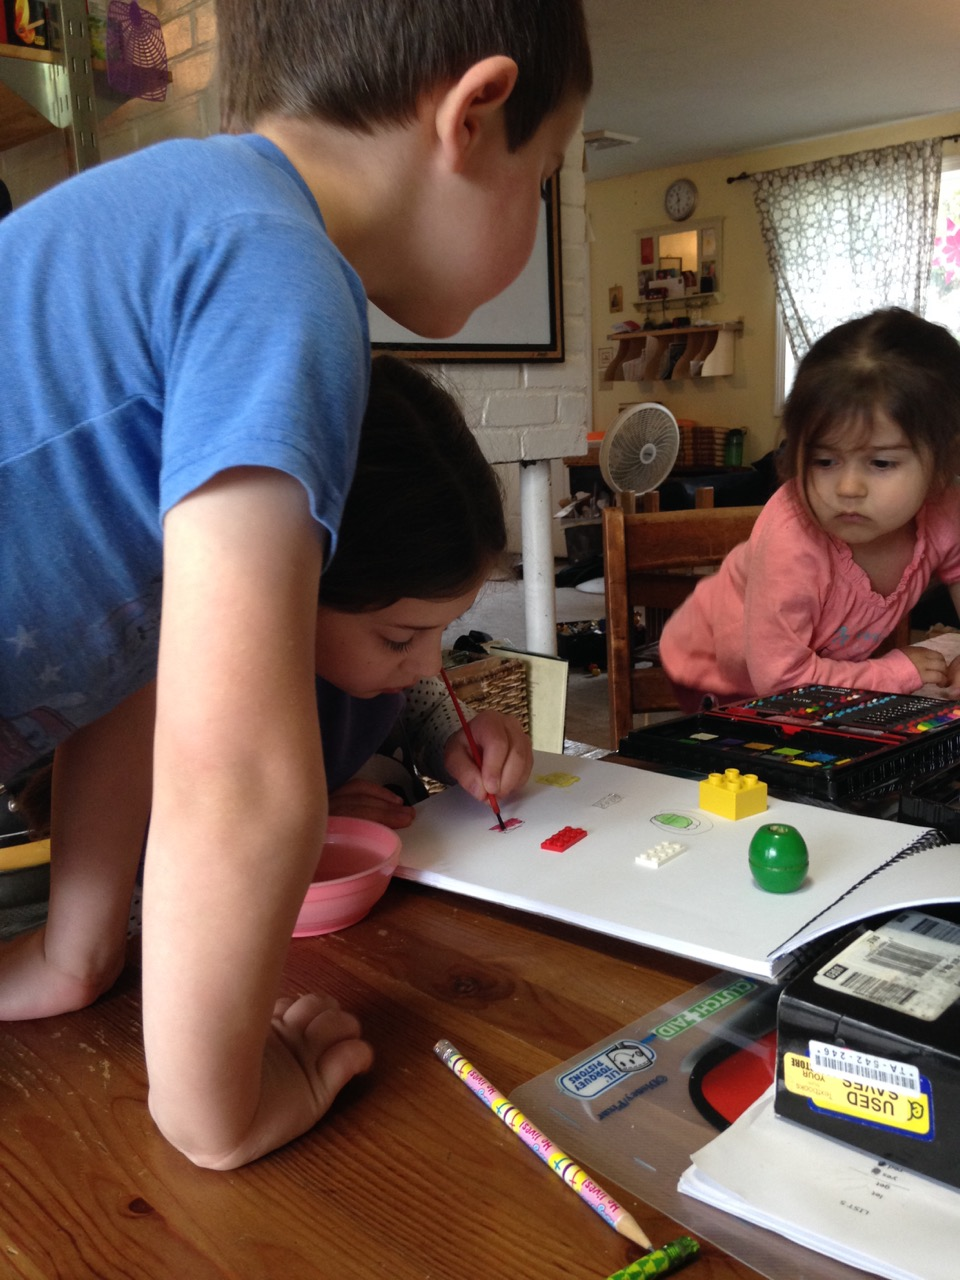 Anthony and Lucy watch Sophie sketching and painting.